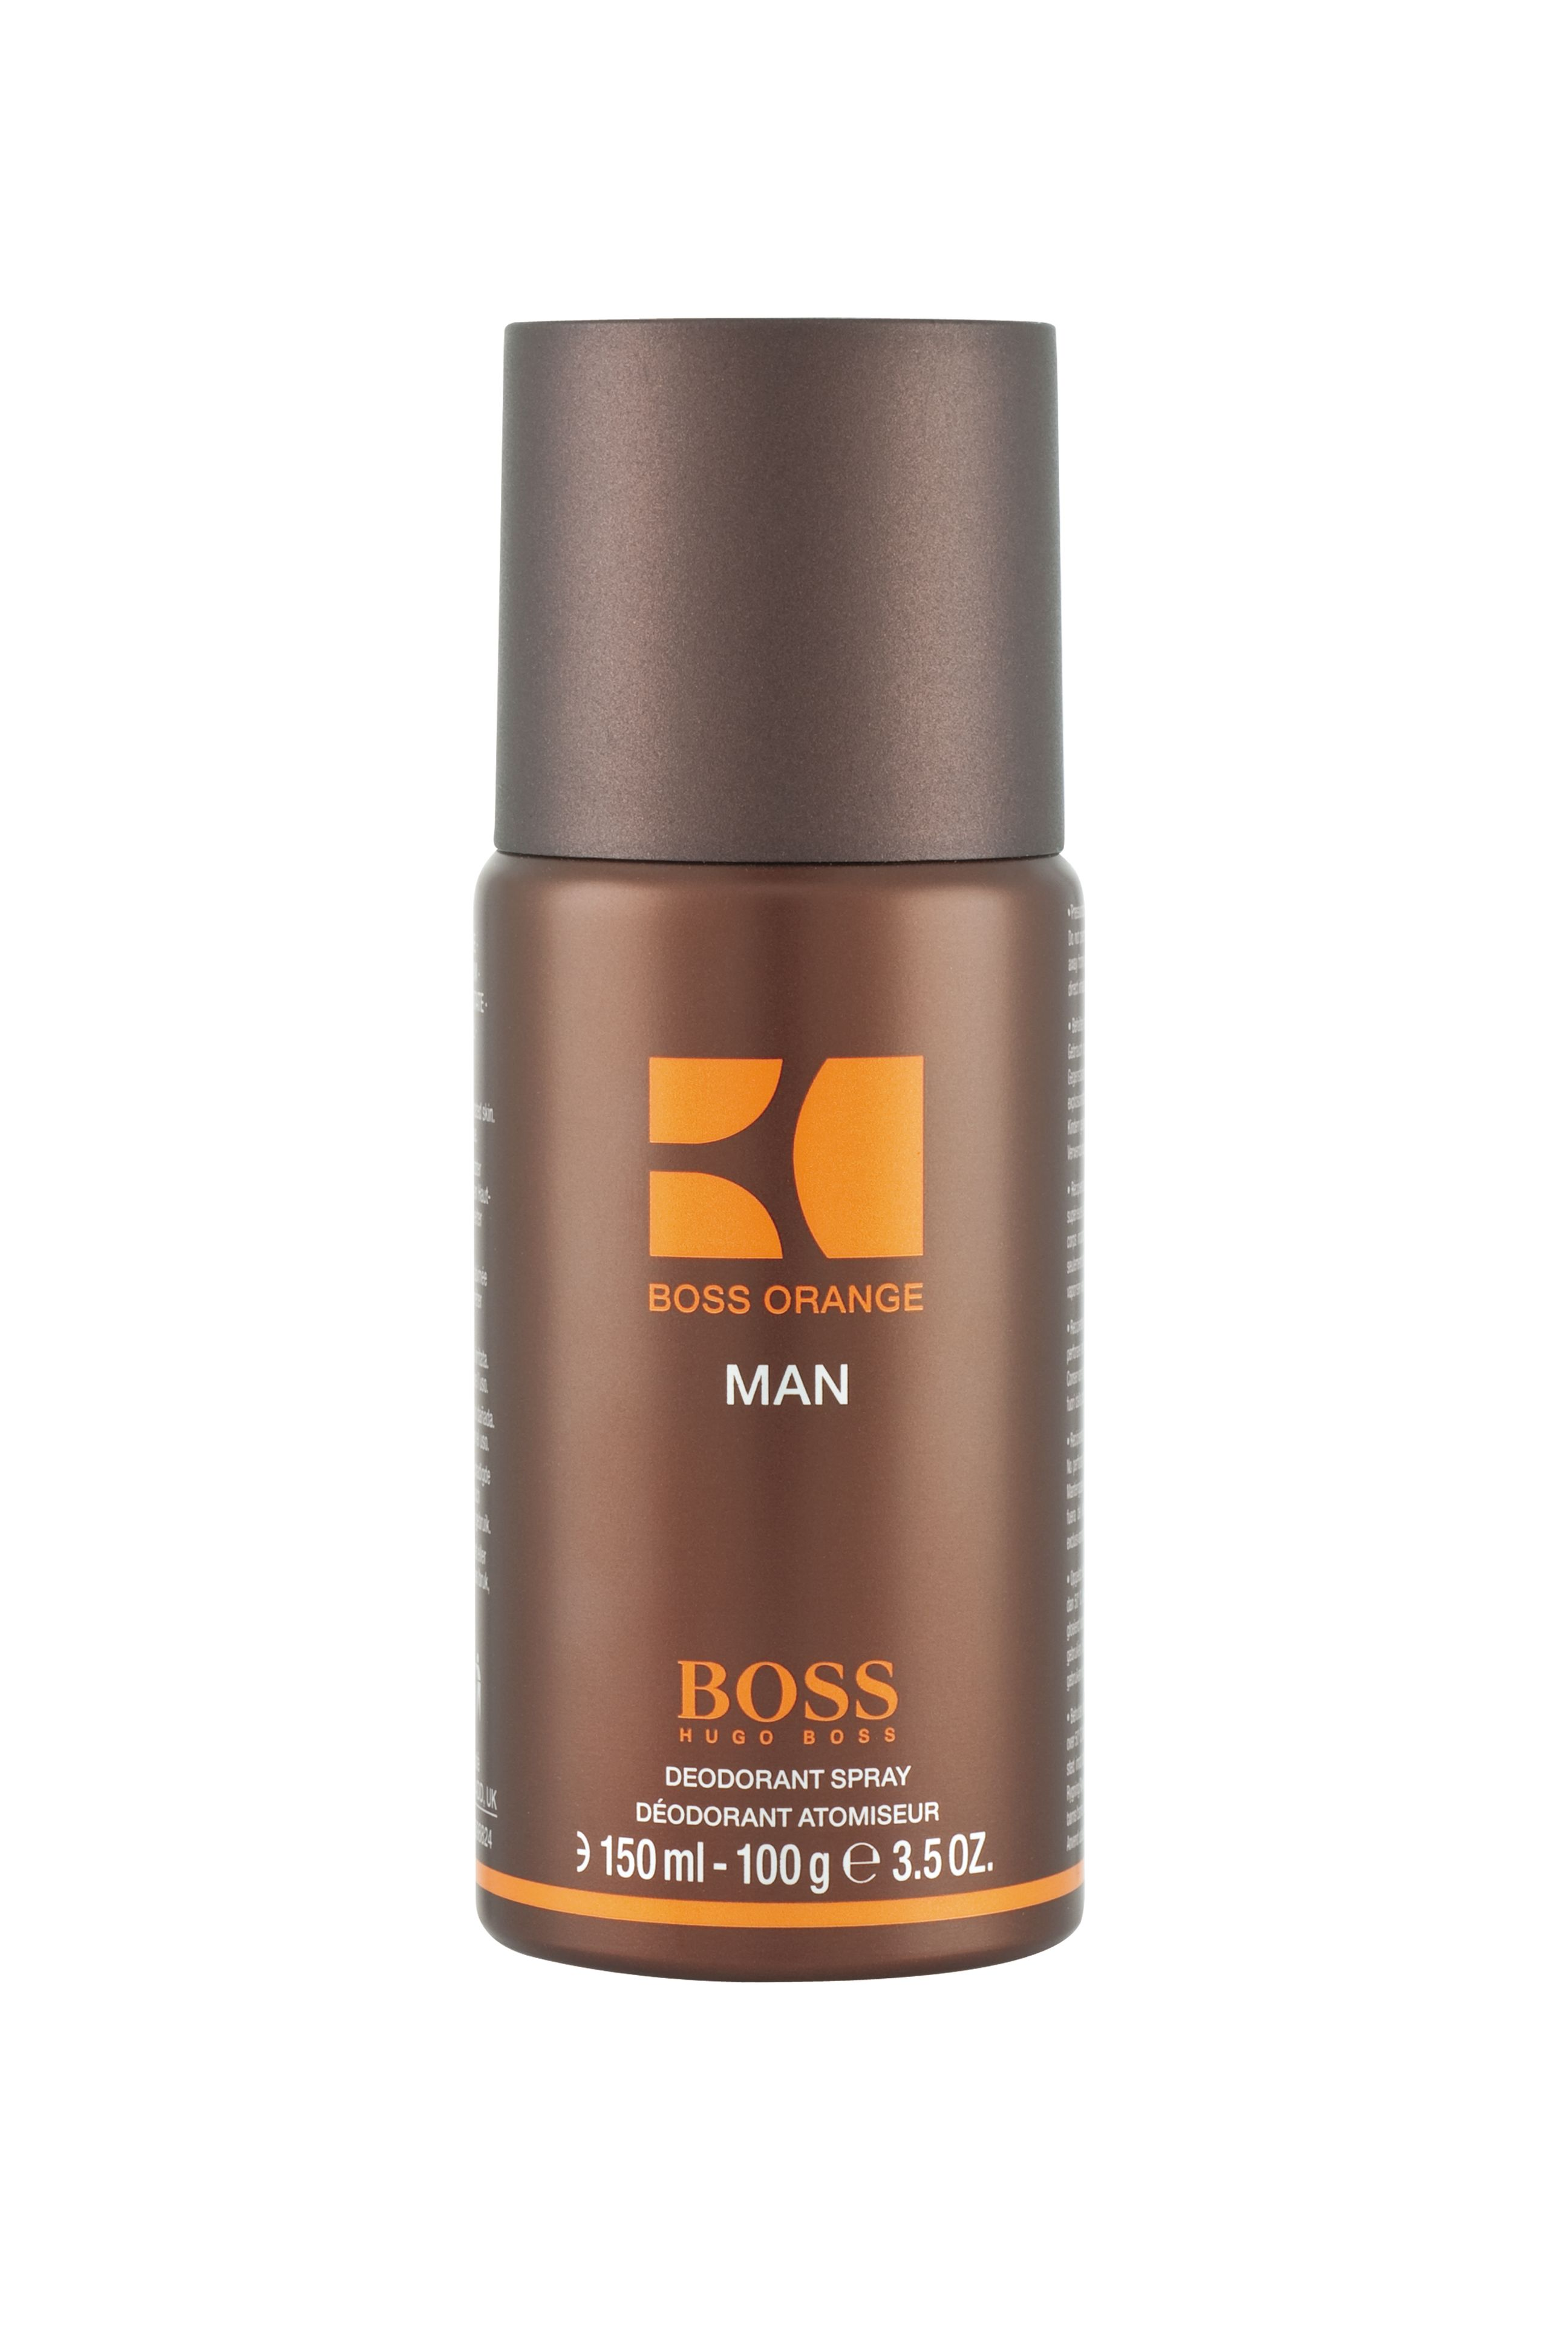 Boss Orange Man Deodorant Spray